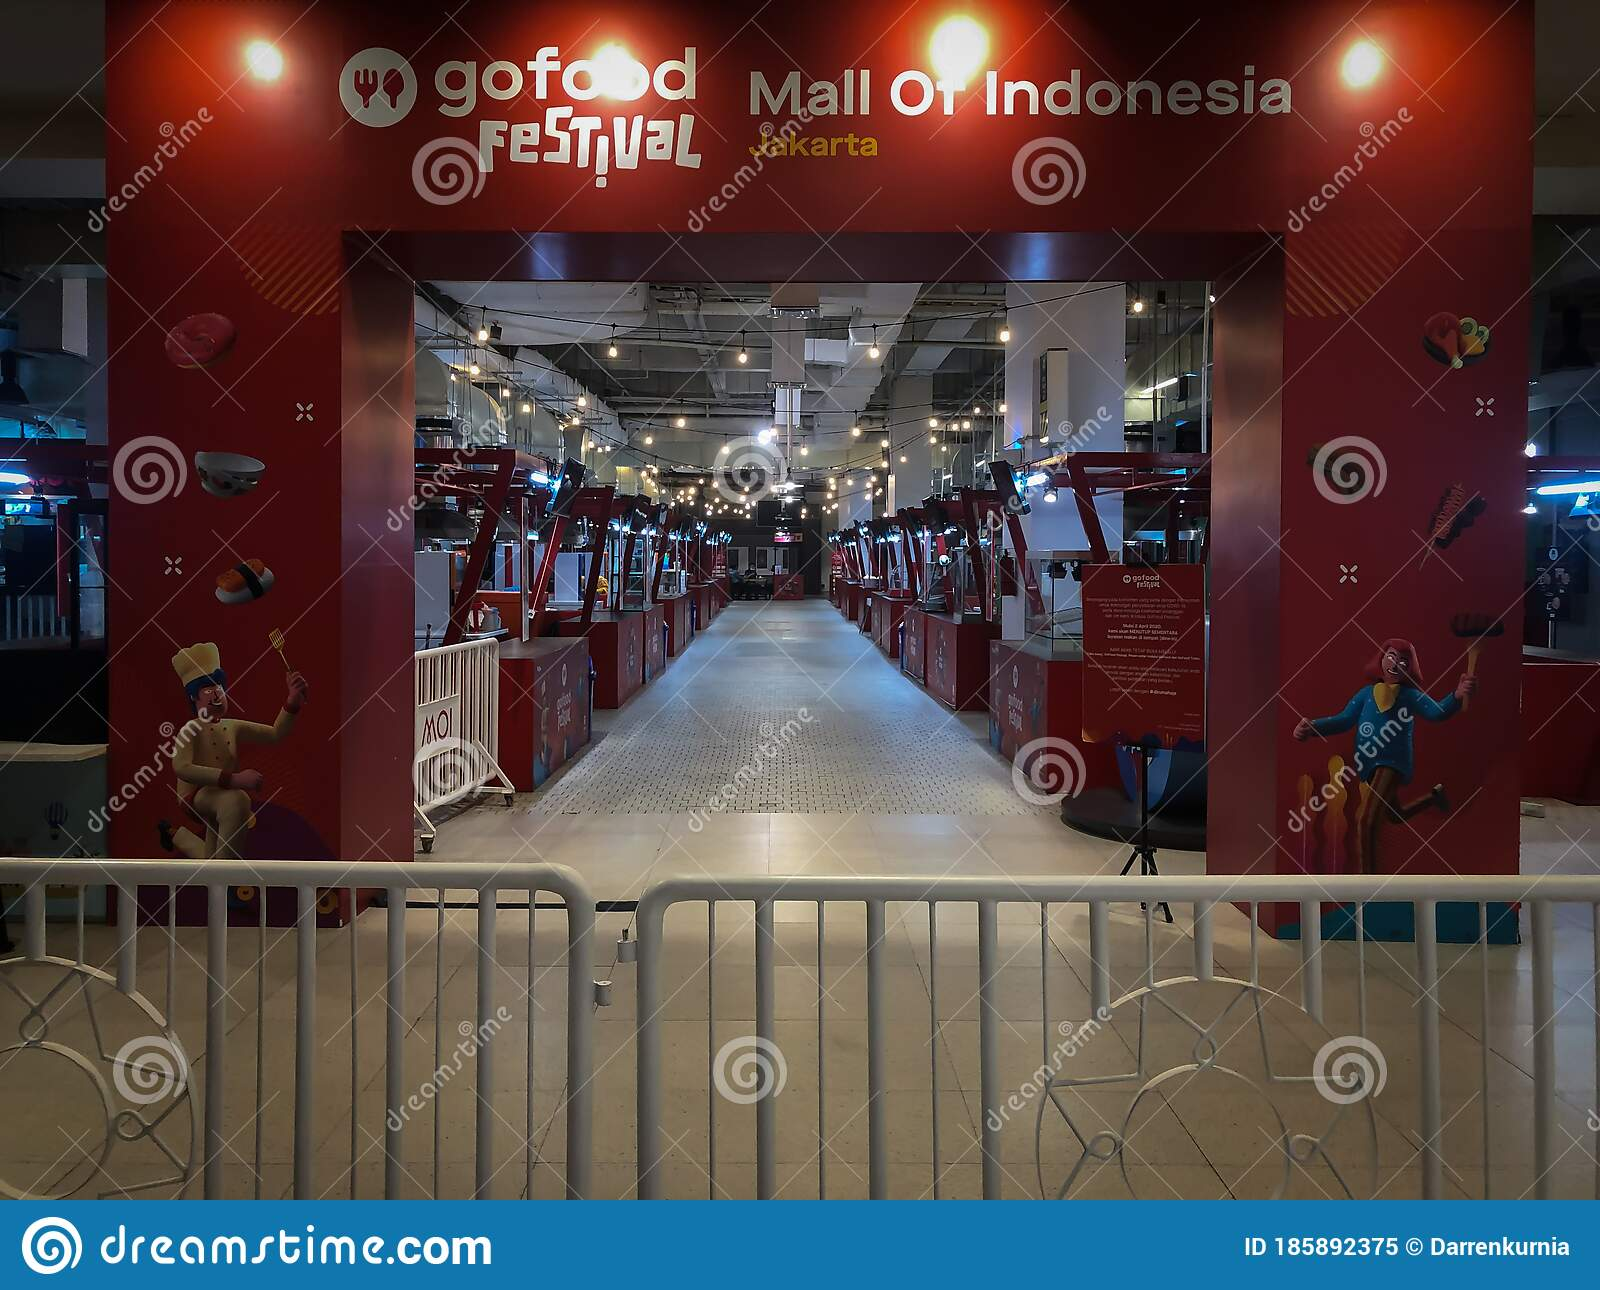 Jakarta 7 Jun 2020 Go Food Festival At Mall Of Indonesia Situation During Covid 19 Semi Lockdown In Jakarta Psbb Dine Ins Ar Editorial Image Image Of Asian Jakarta 185892375